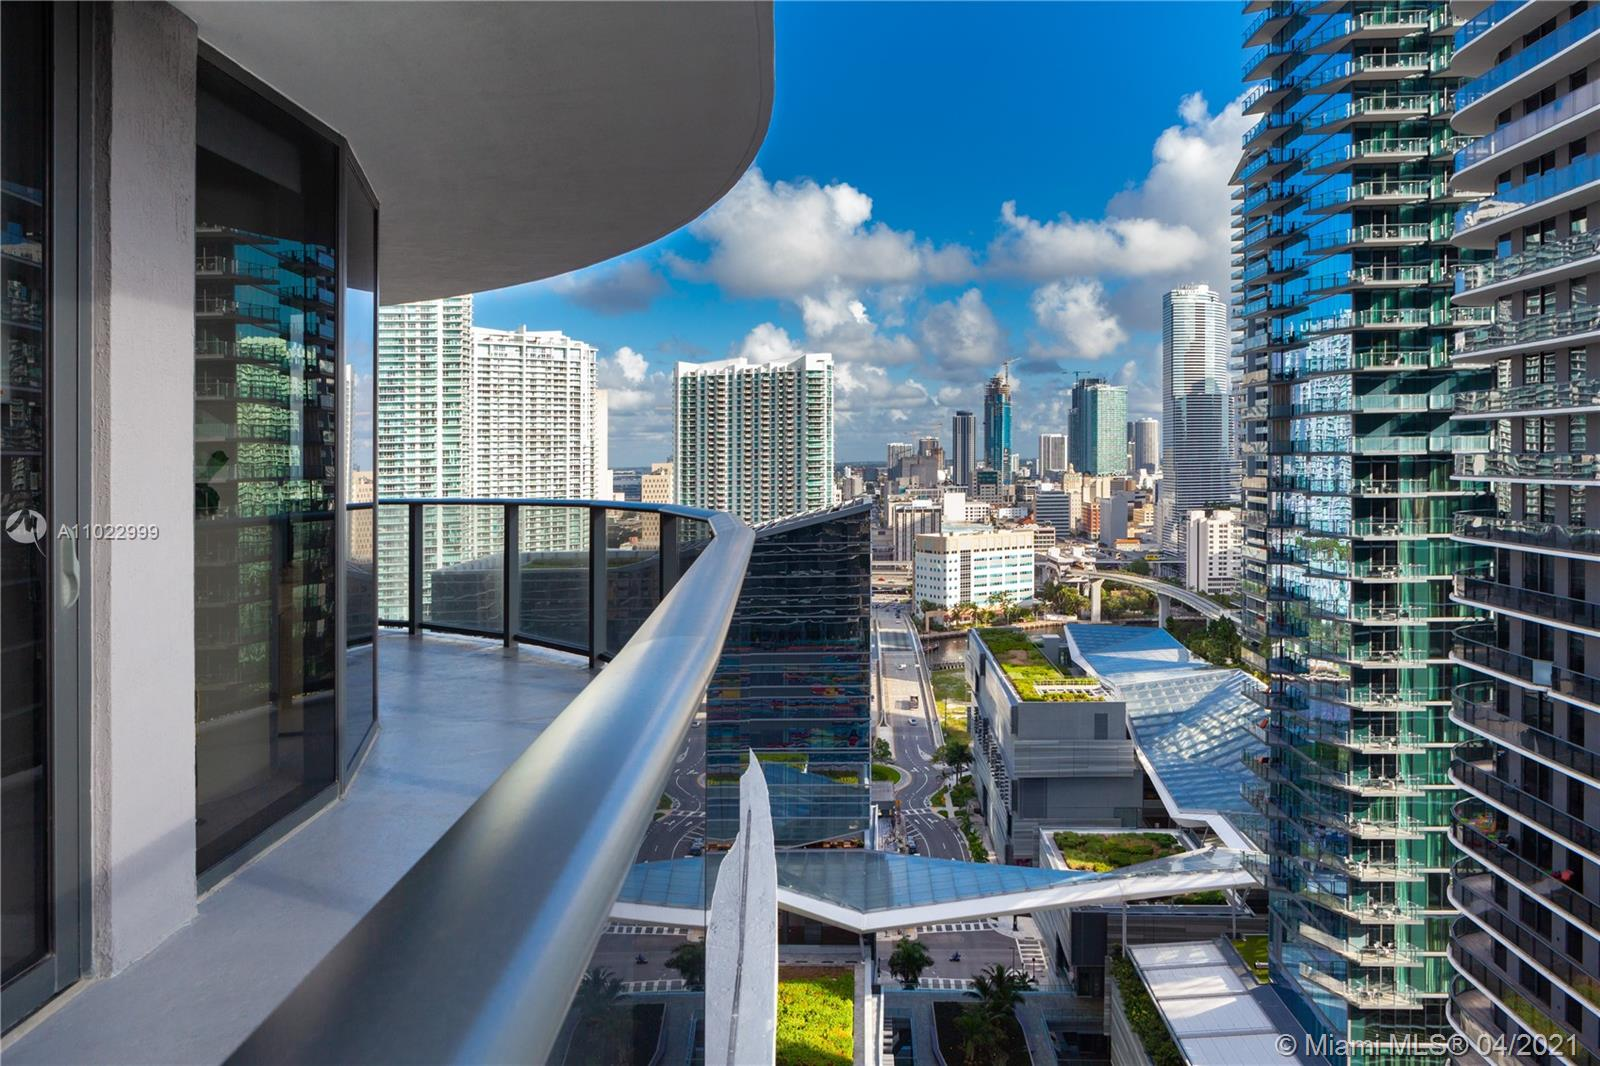 ONLY INVESTORS!!!Motivated seller. 3D Tour available. Unit has a two-year lease ending in Jan 2023 at $3200 a month. Stunning 2 BR+ 2 BA. Floor to ceiling impact windows. Top of the line appliances, open kitchen, 1 assigned parking space included. Beautiful views from the 23rd floor see as far to the open ocean. Large wraparound balcony. Enjoy the 6-star resort style amenities featuring outdoor fitness area, roof top pool, and the world famous equinox fitness center. Steps away from shops, restaurants, and entertainment. Great investment opportunity! Open to offers.